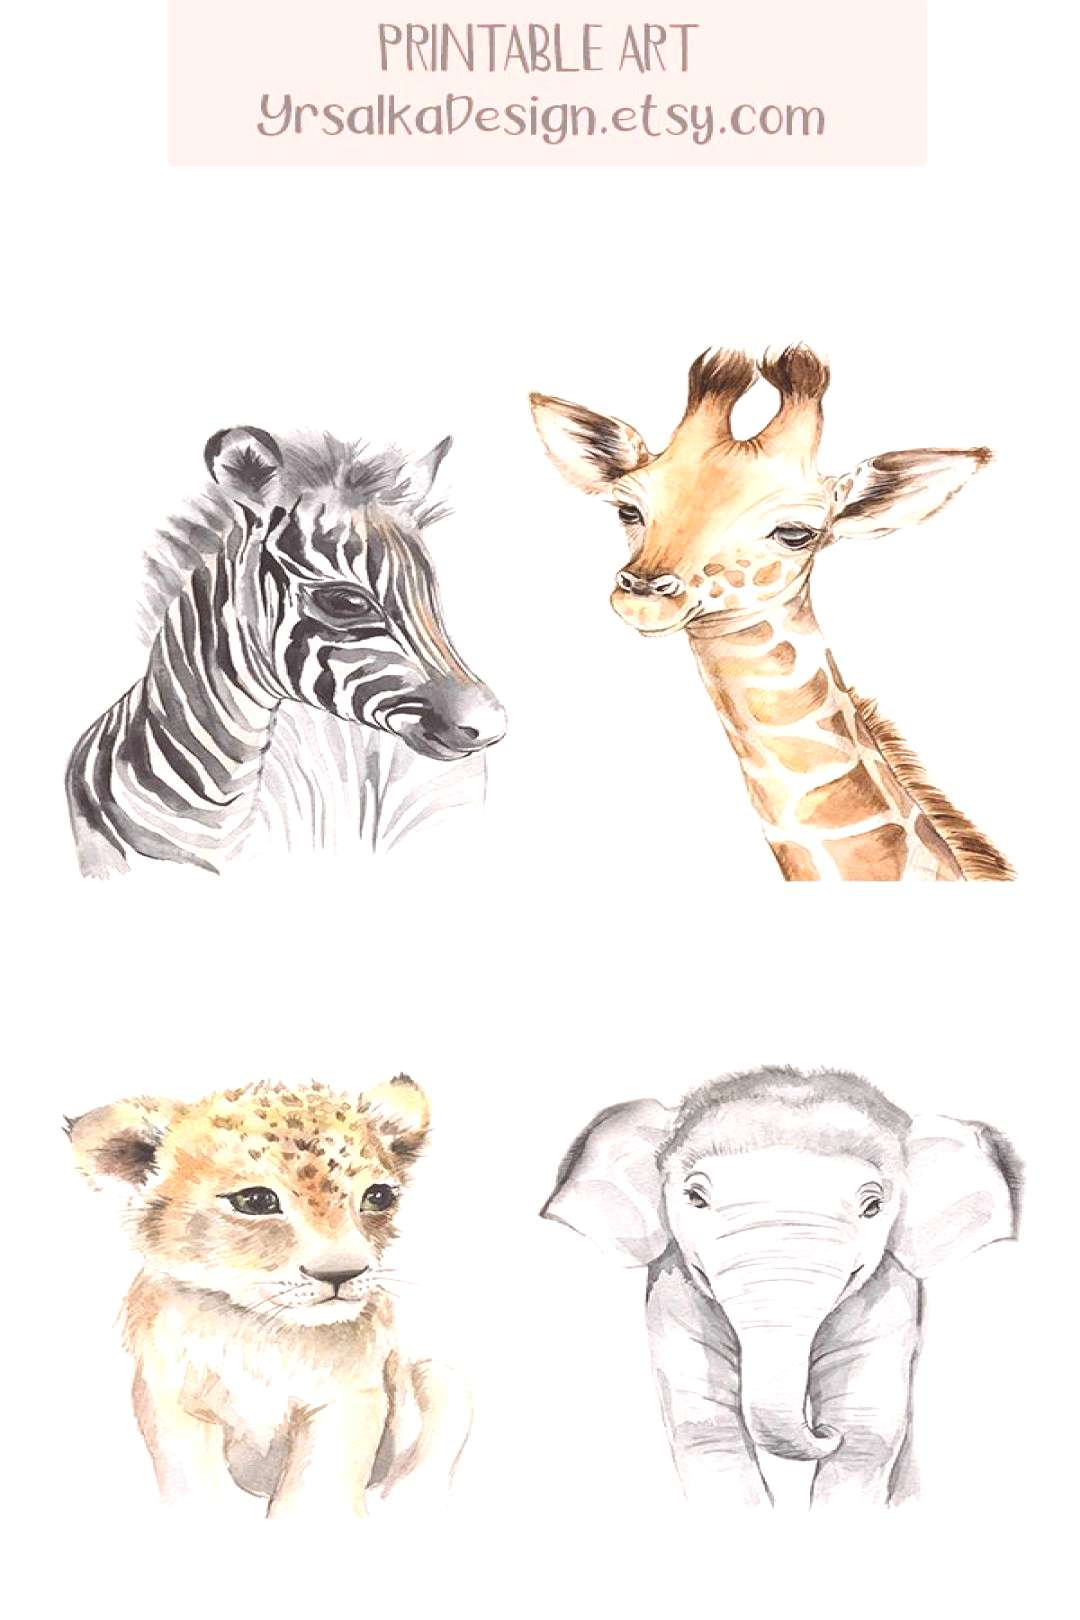 Baby Tier Kinderzimmer Wand Kunst Safari Animal Prints Druckbare Aquarell Tier Kunstdrucke Malerei